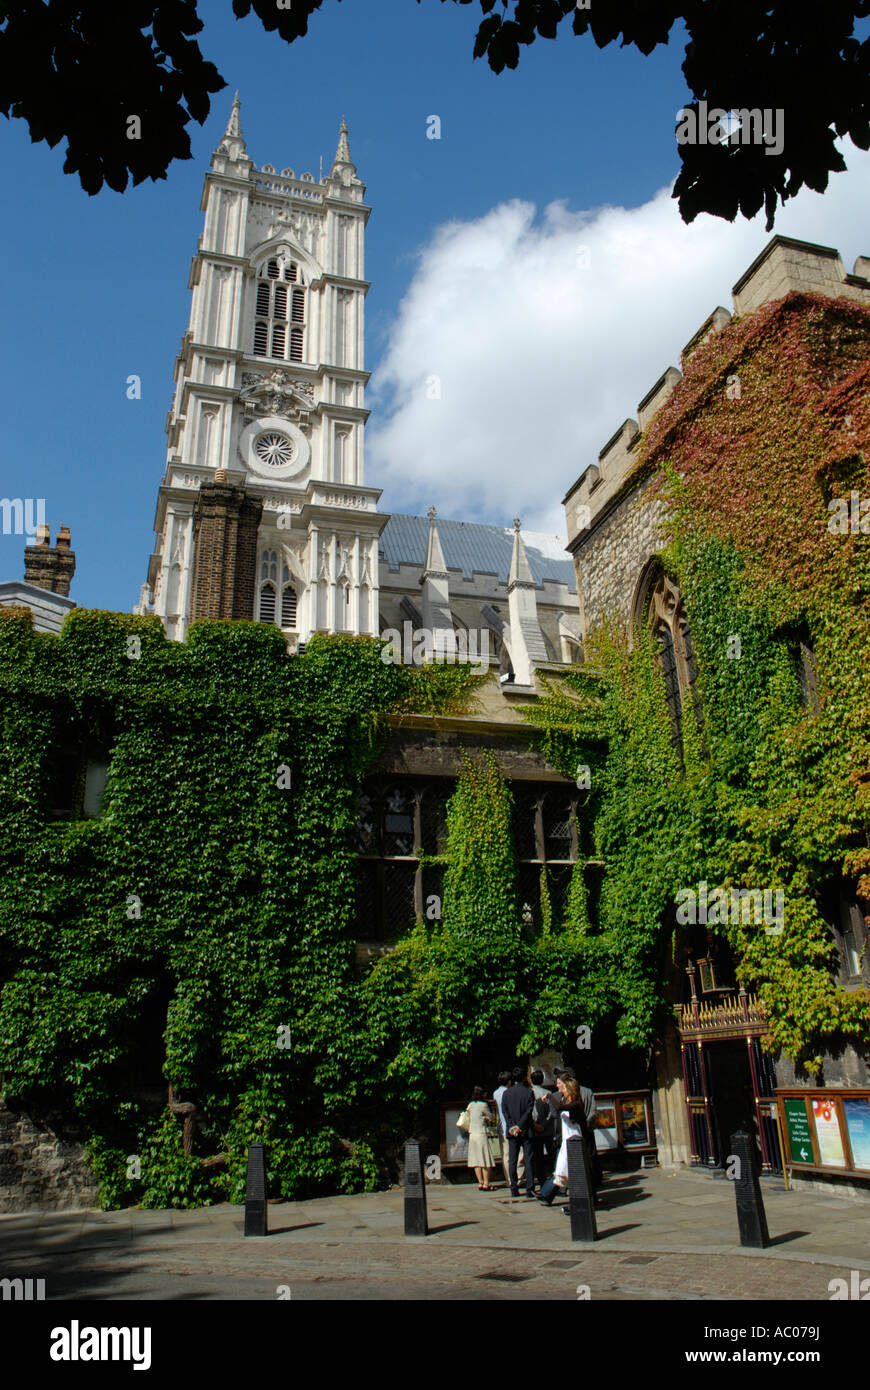 Westminster Abbey tower viewed above the colourful ivy walls of Dean's Yard cloister London - Stock Image